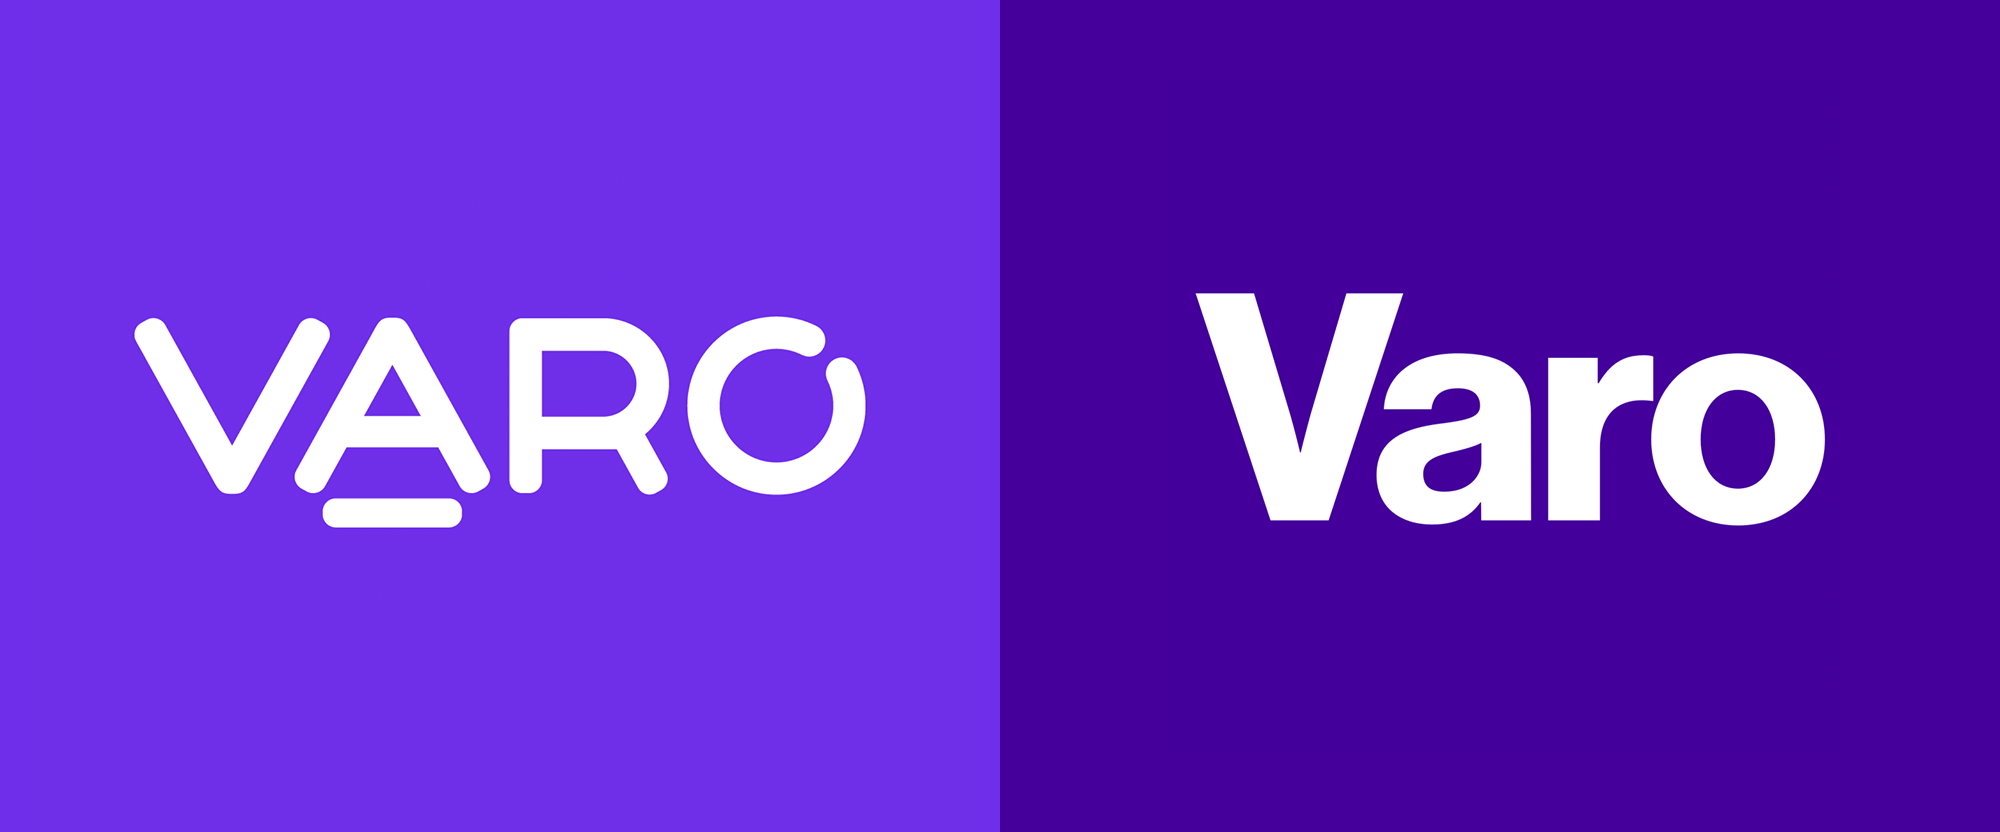 New Logo for Varo